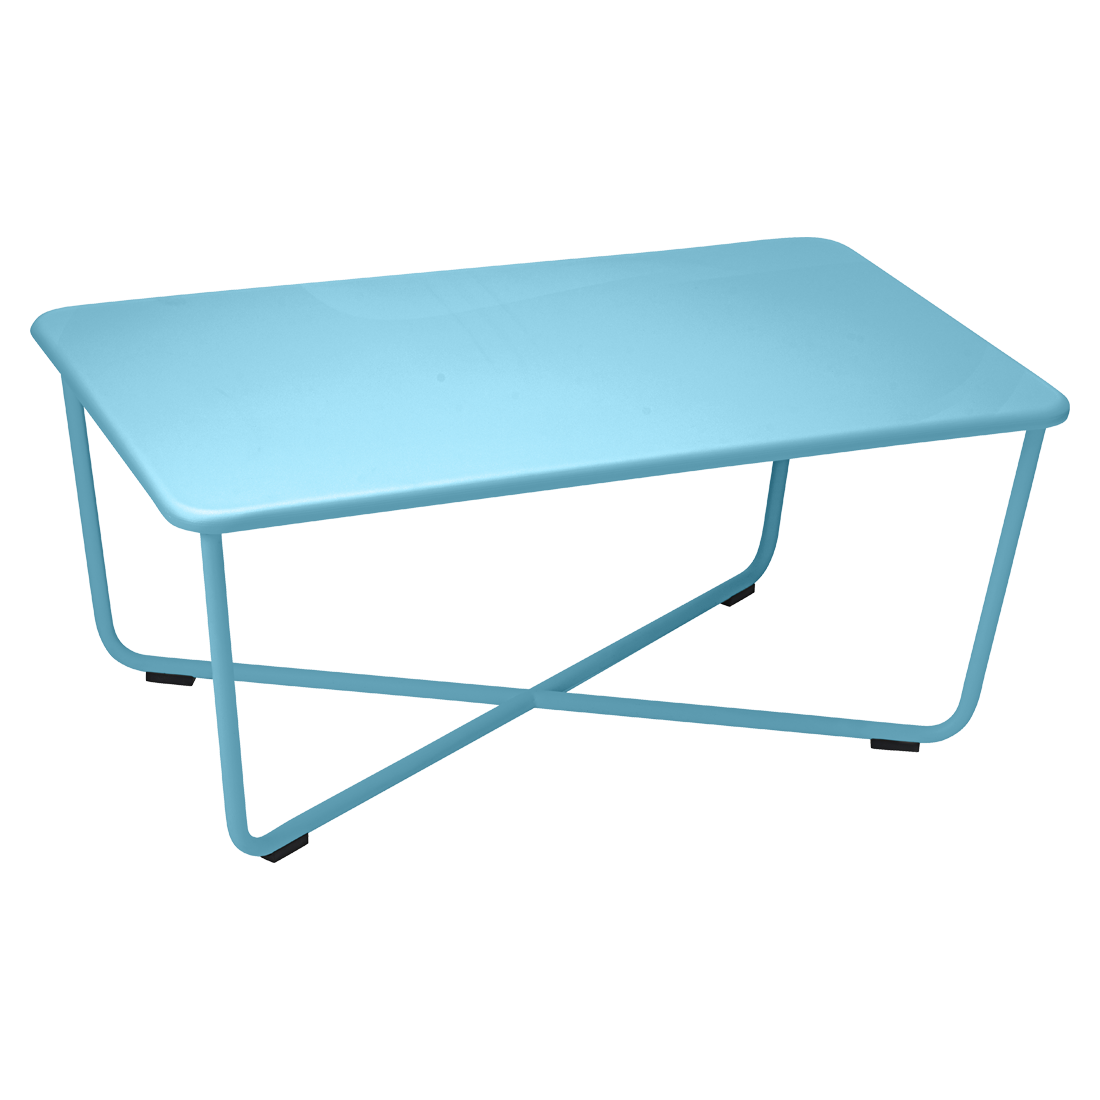 table basse croisette de fermob bleu turquoise. Black Bedroom Furniture Sets. Home Design Ideas